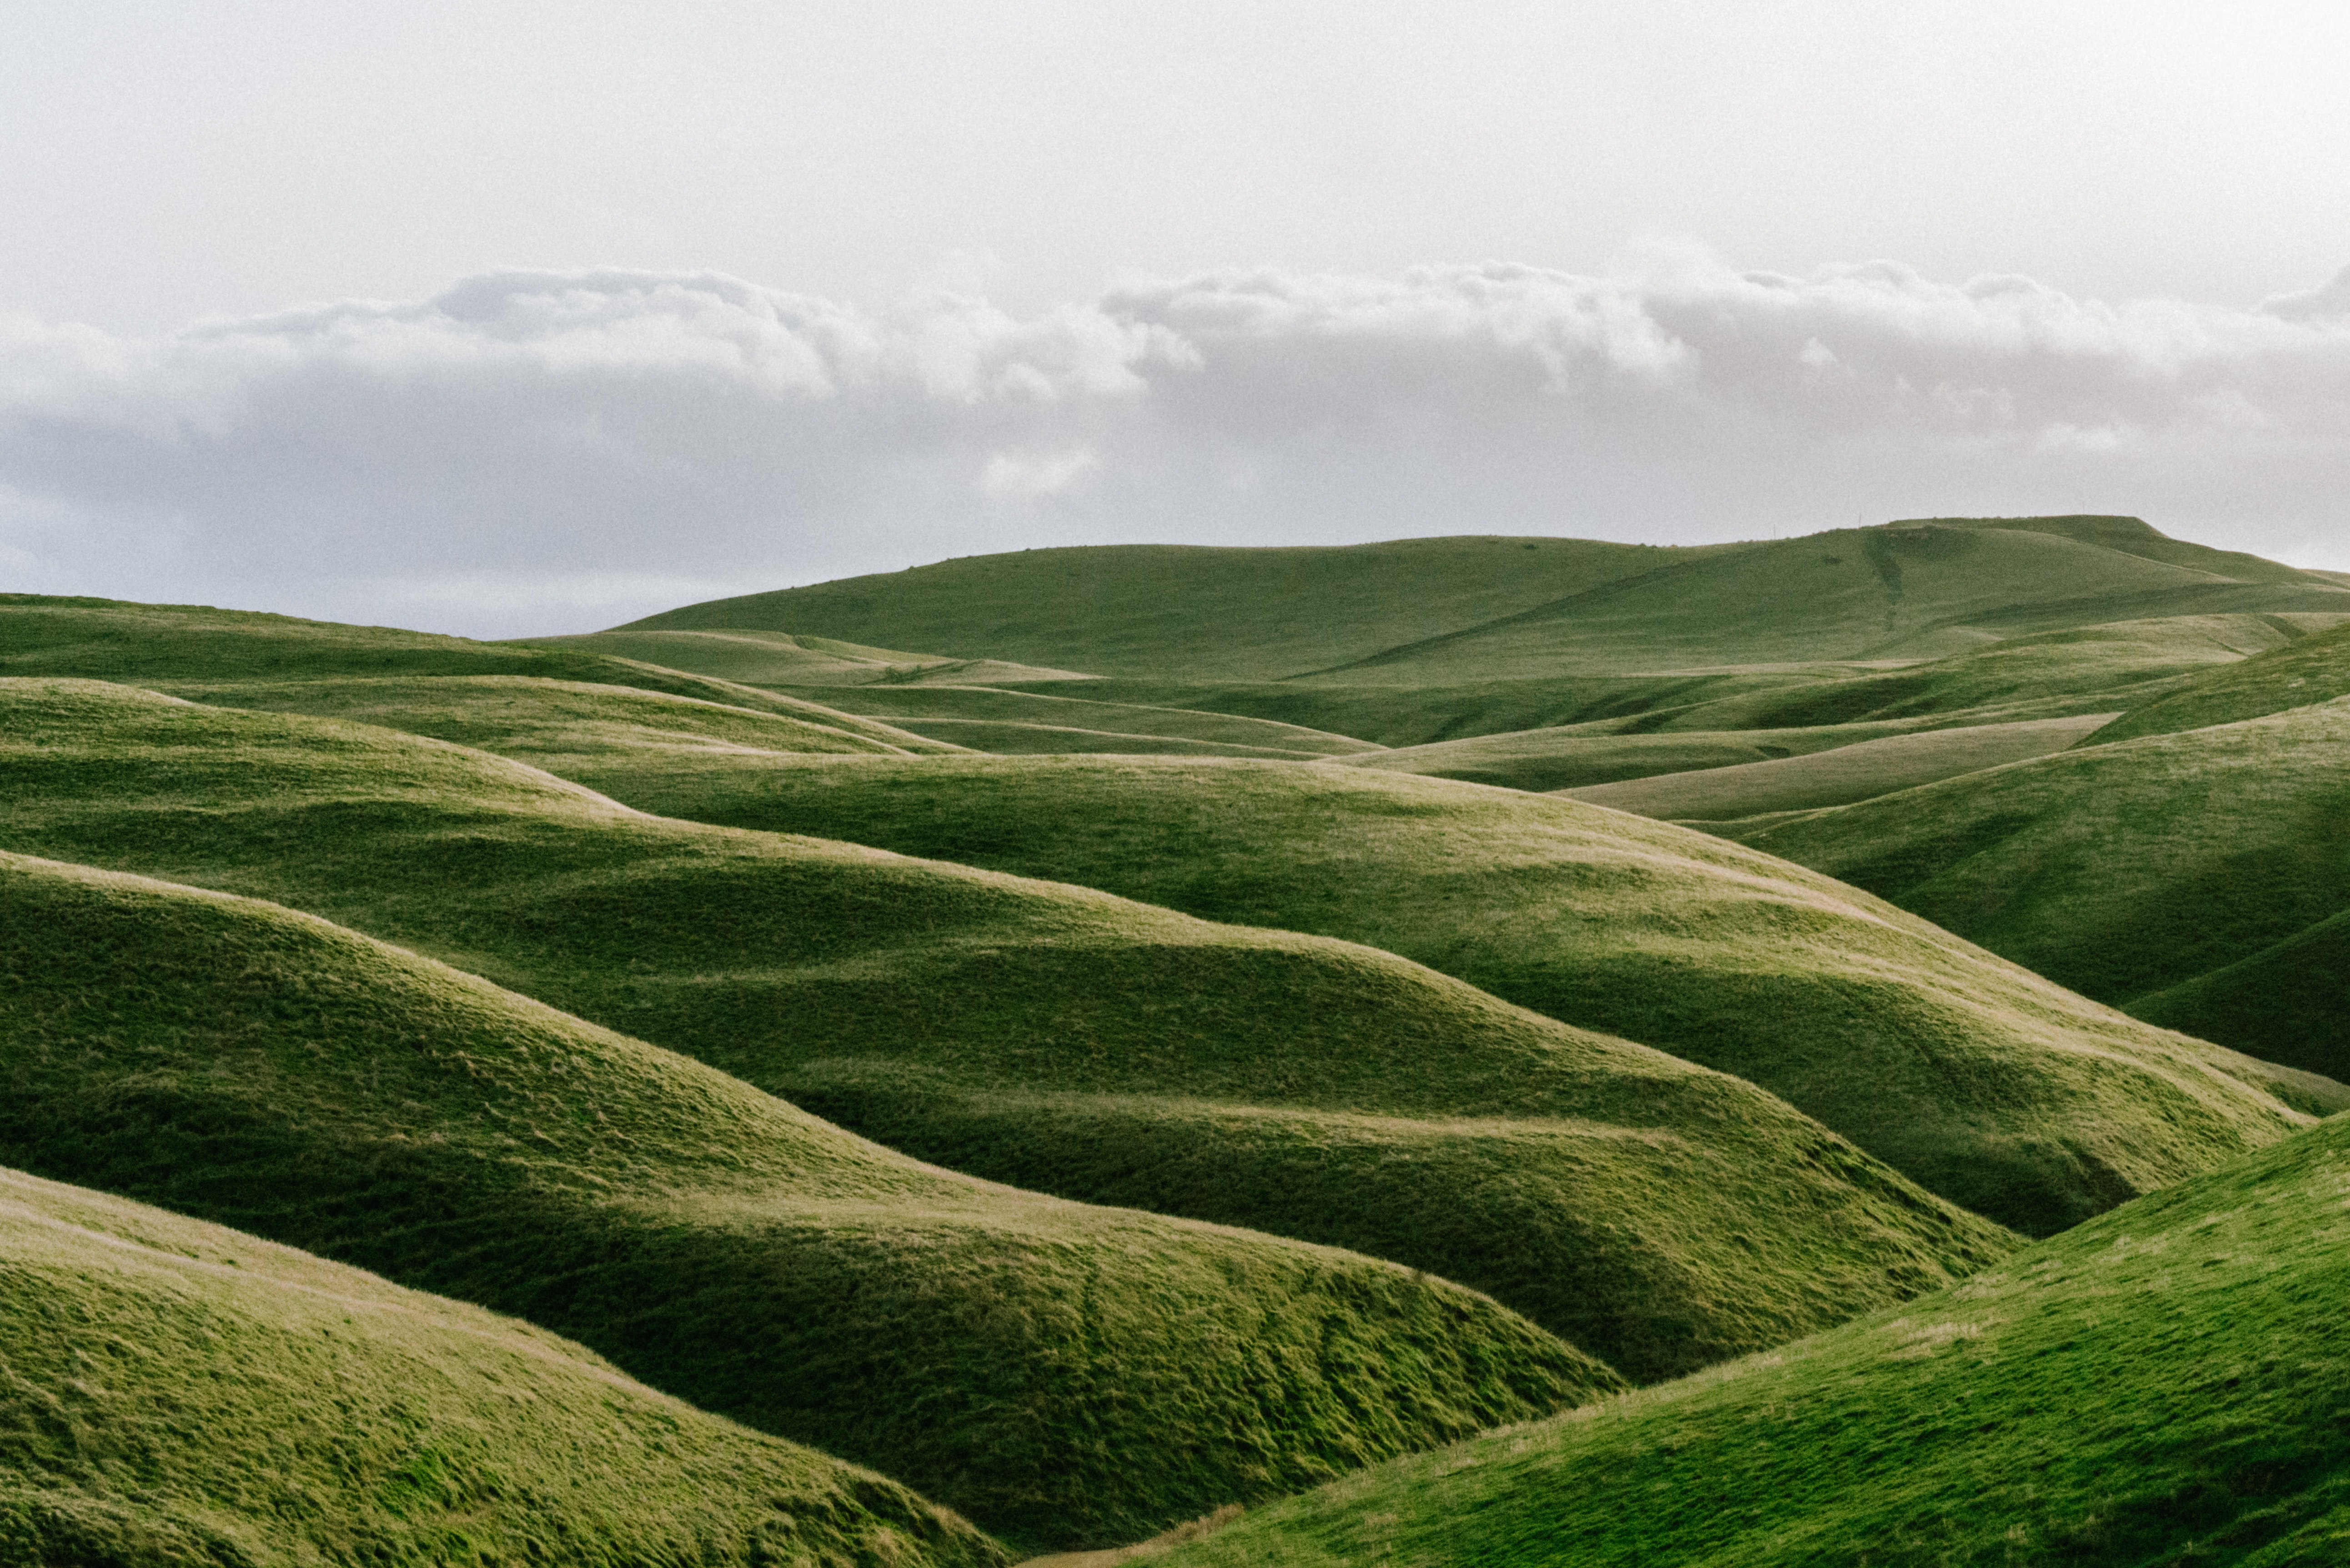 Green rolling hills of grass on a cloudy day